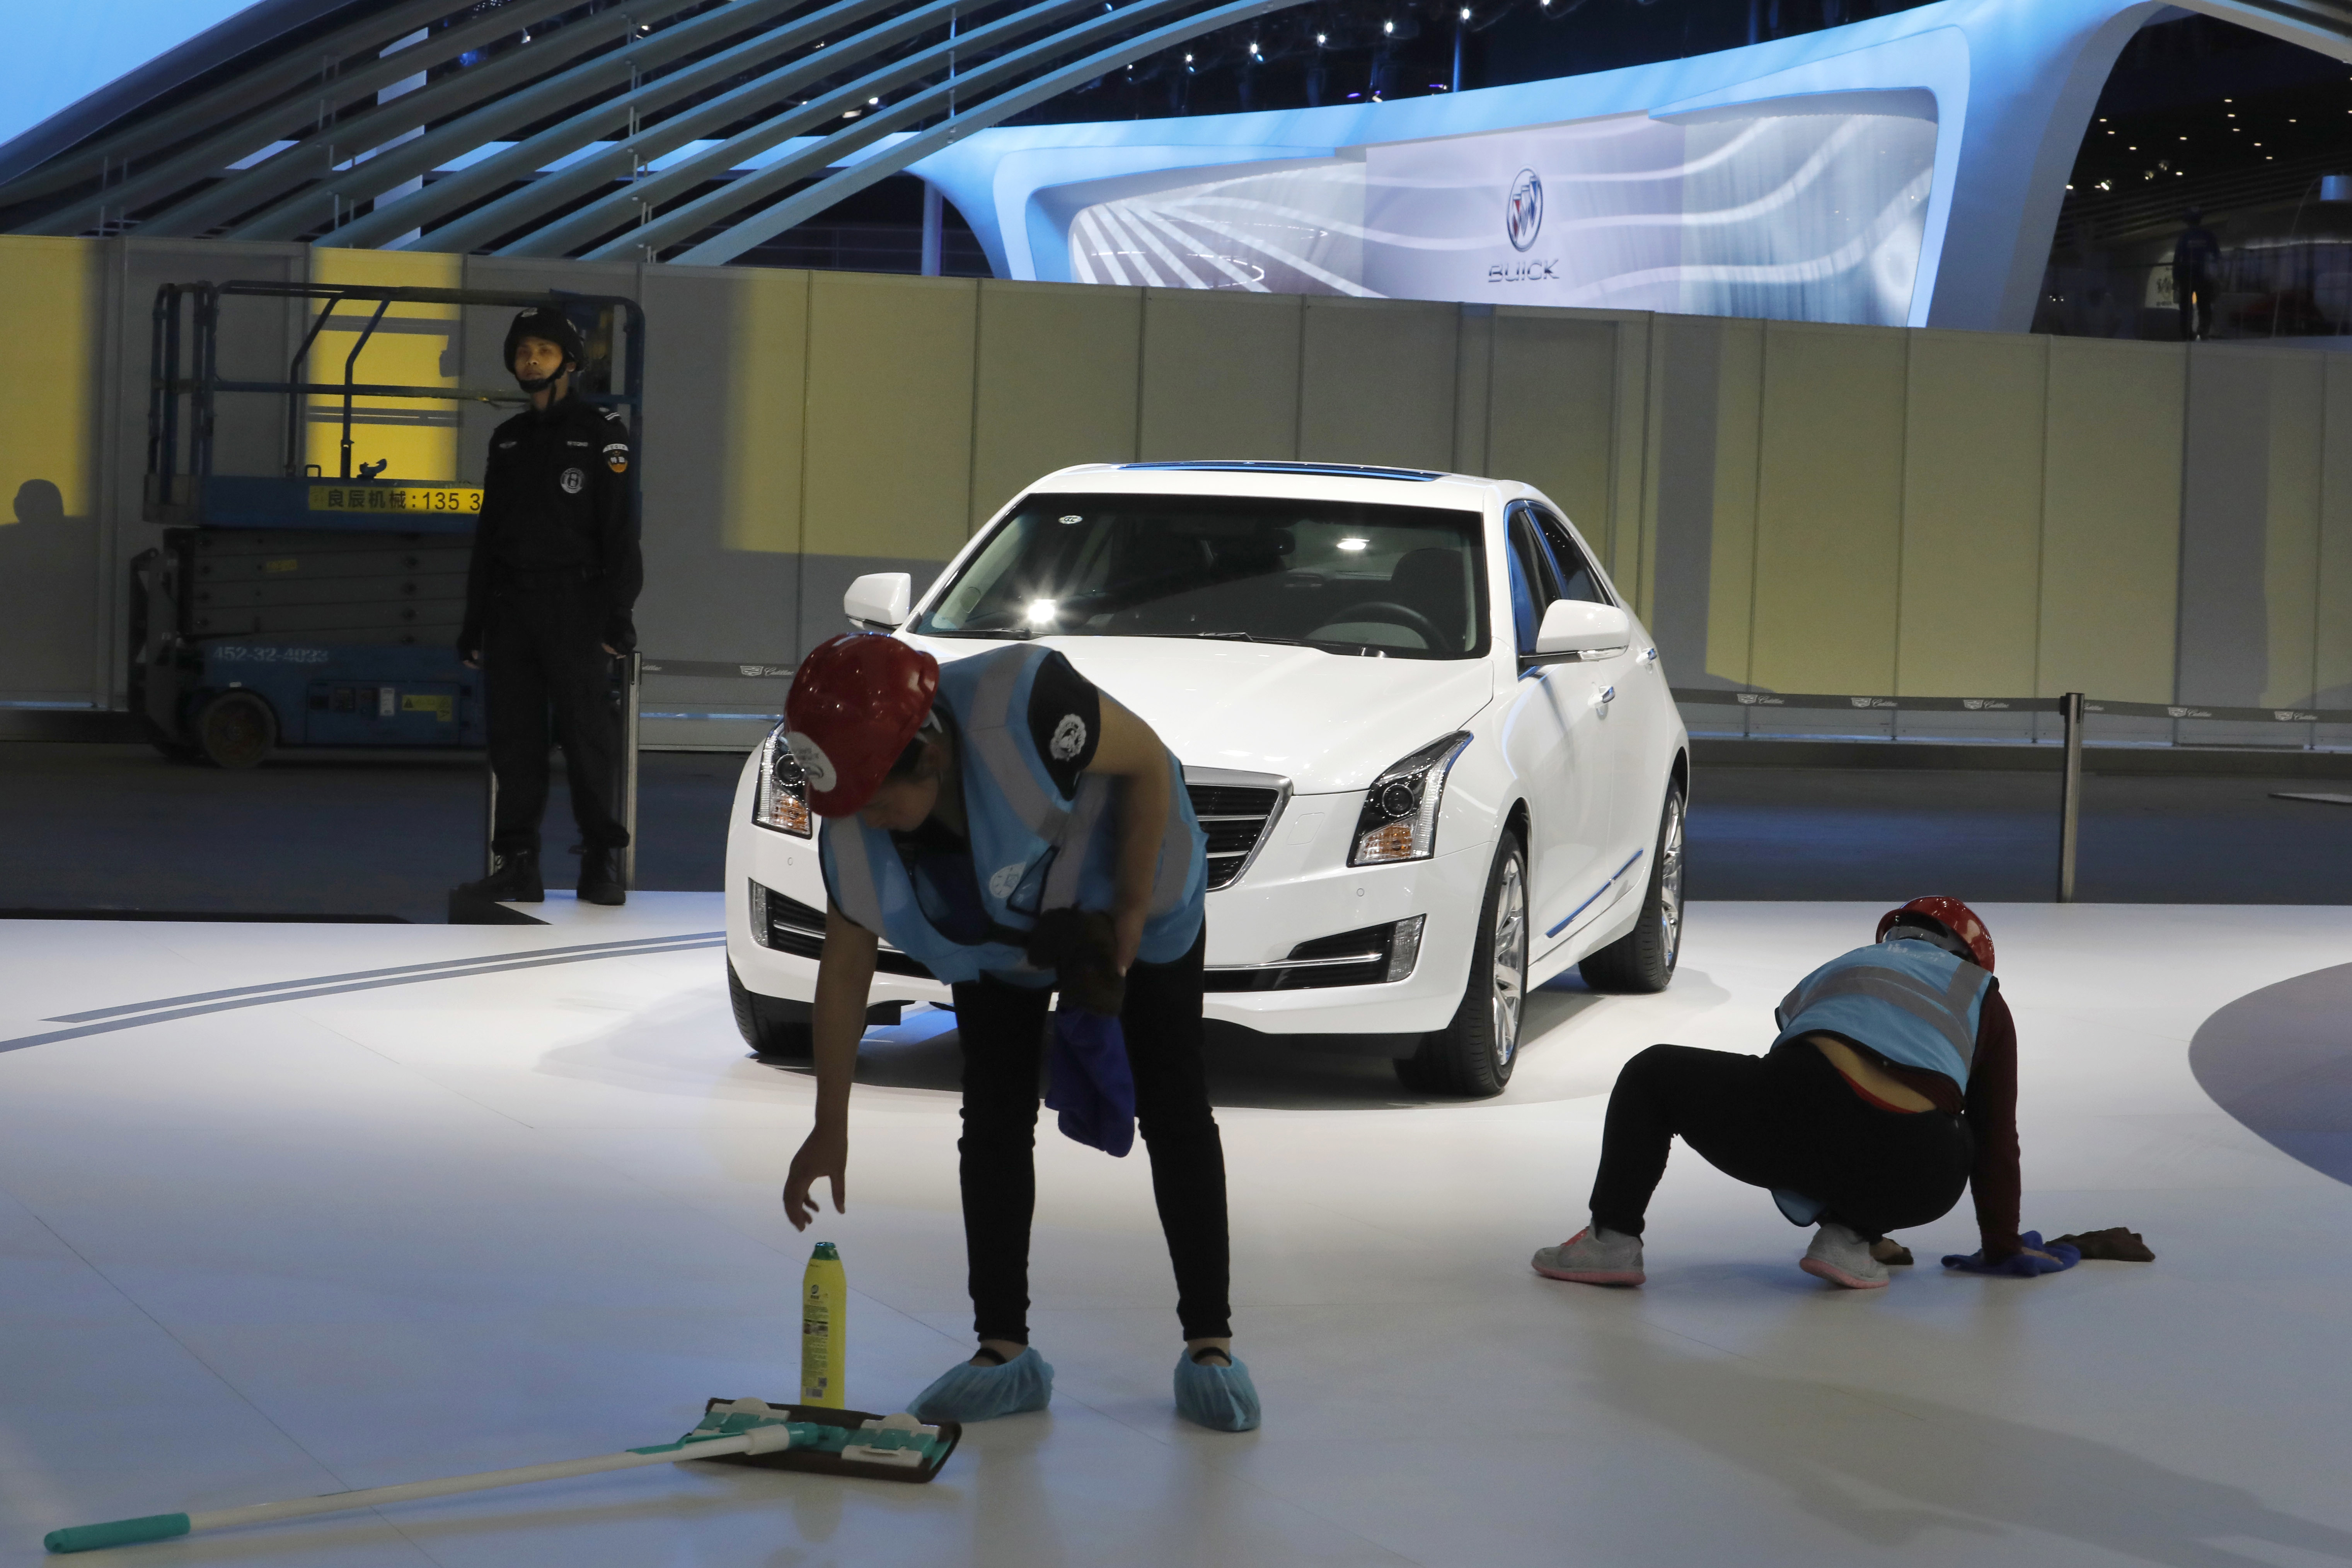 China Auto Show-1 Workers prepare for the Auto Shanghai 2017 show at the National Exhibition and Convention Center in Shanghai, China, Tuesday, April 18, 2017. At the auto show, the global industry's biggest marketing event of the year, almost every global and Chinese auto brand is showing at least one electric concept vehicle, if not a market-ready model. (AP Photo/Ng Han Guan)